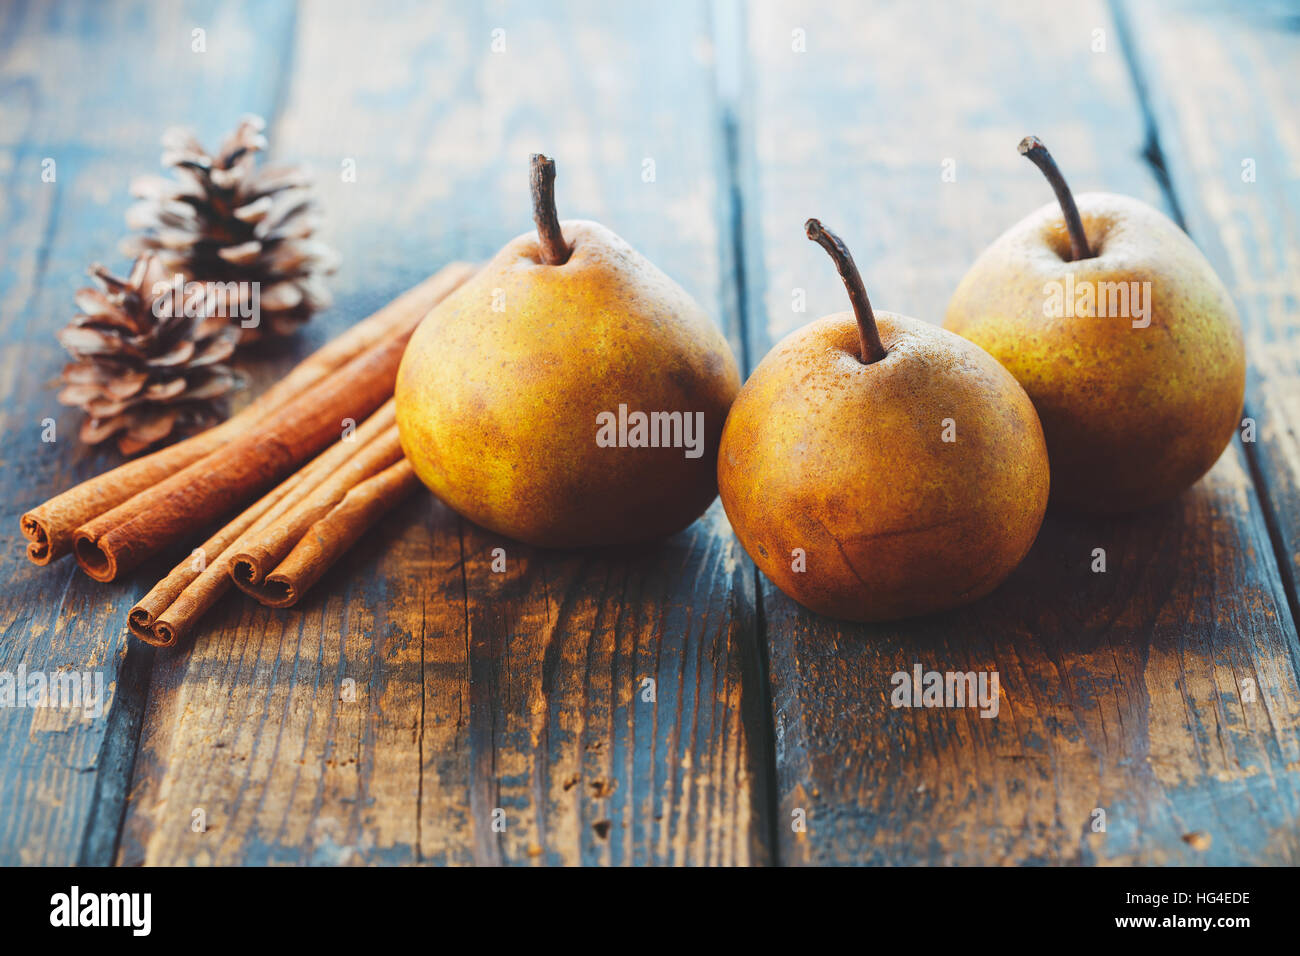 Organic pears with cinnamon sticks on a wooden table Stock Photo